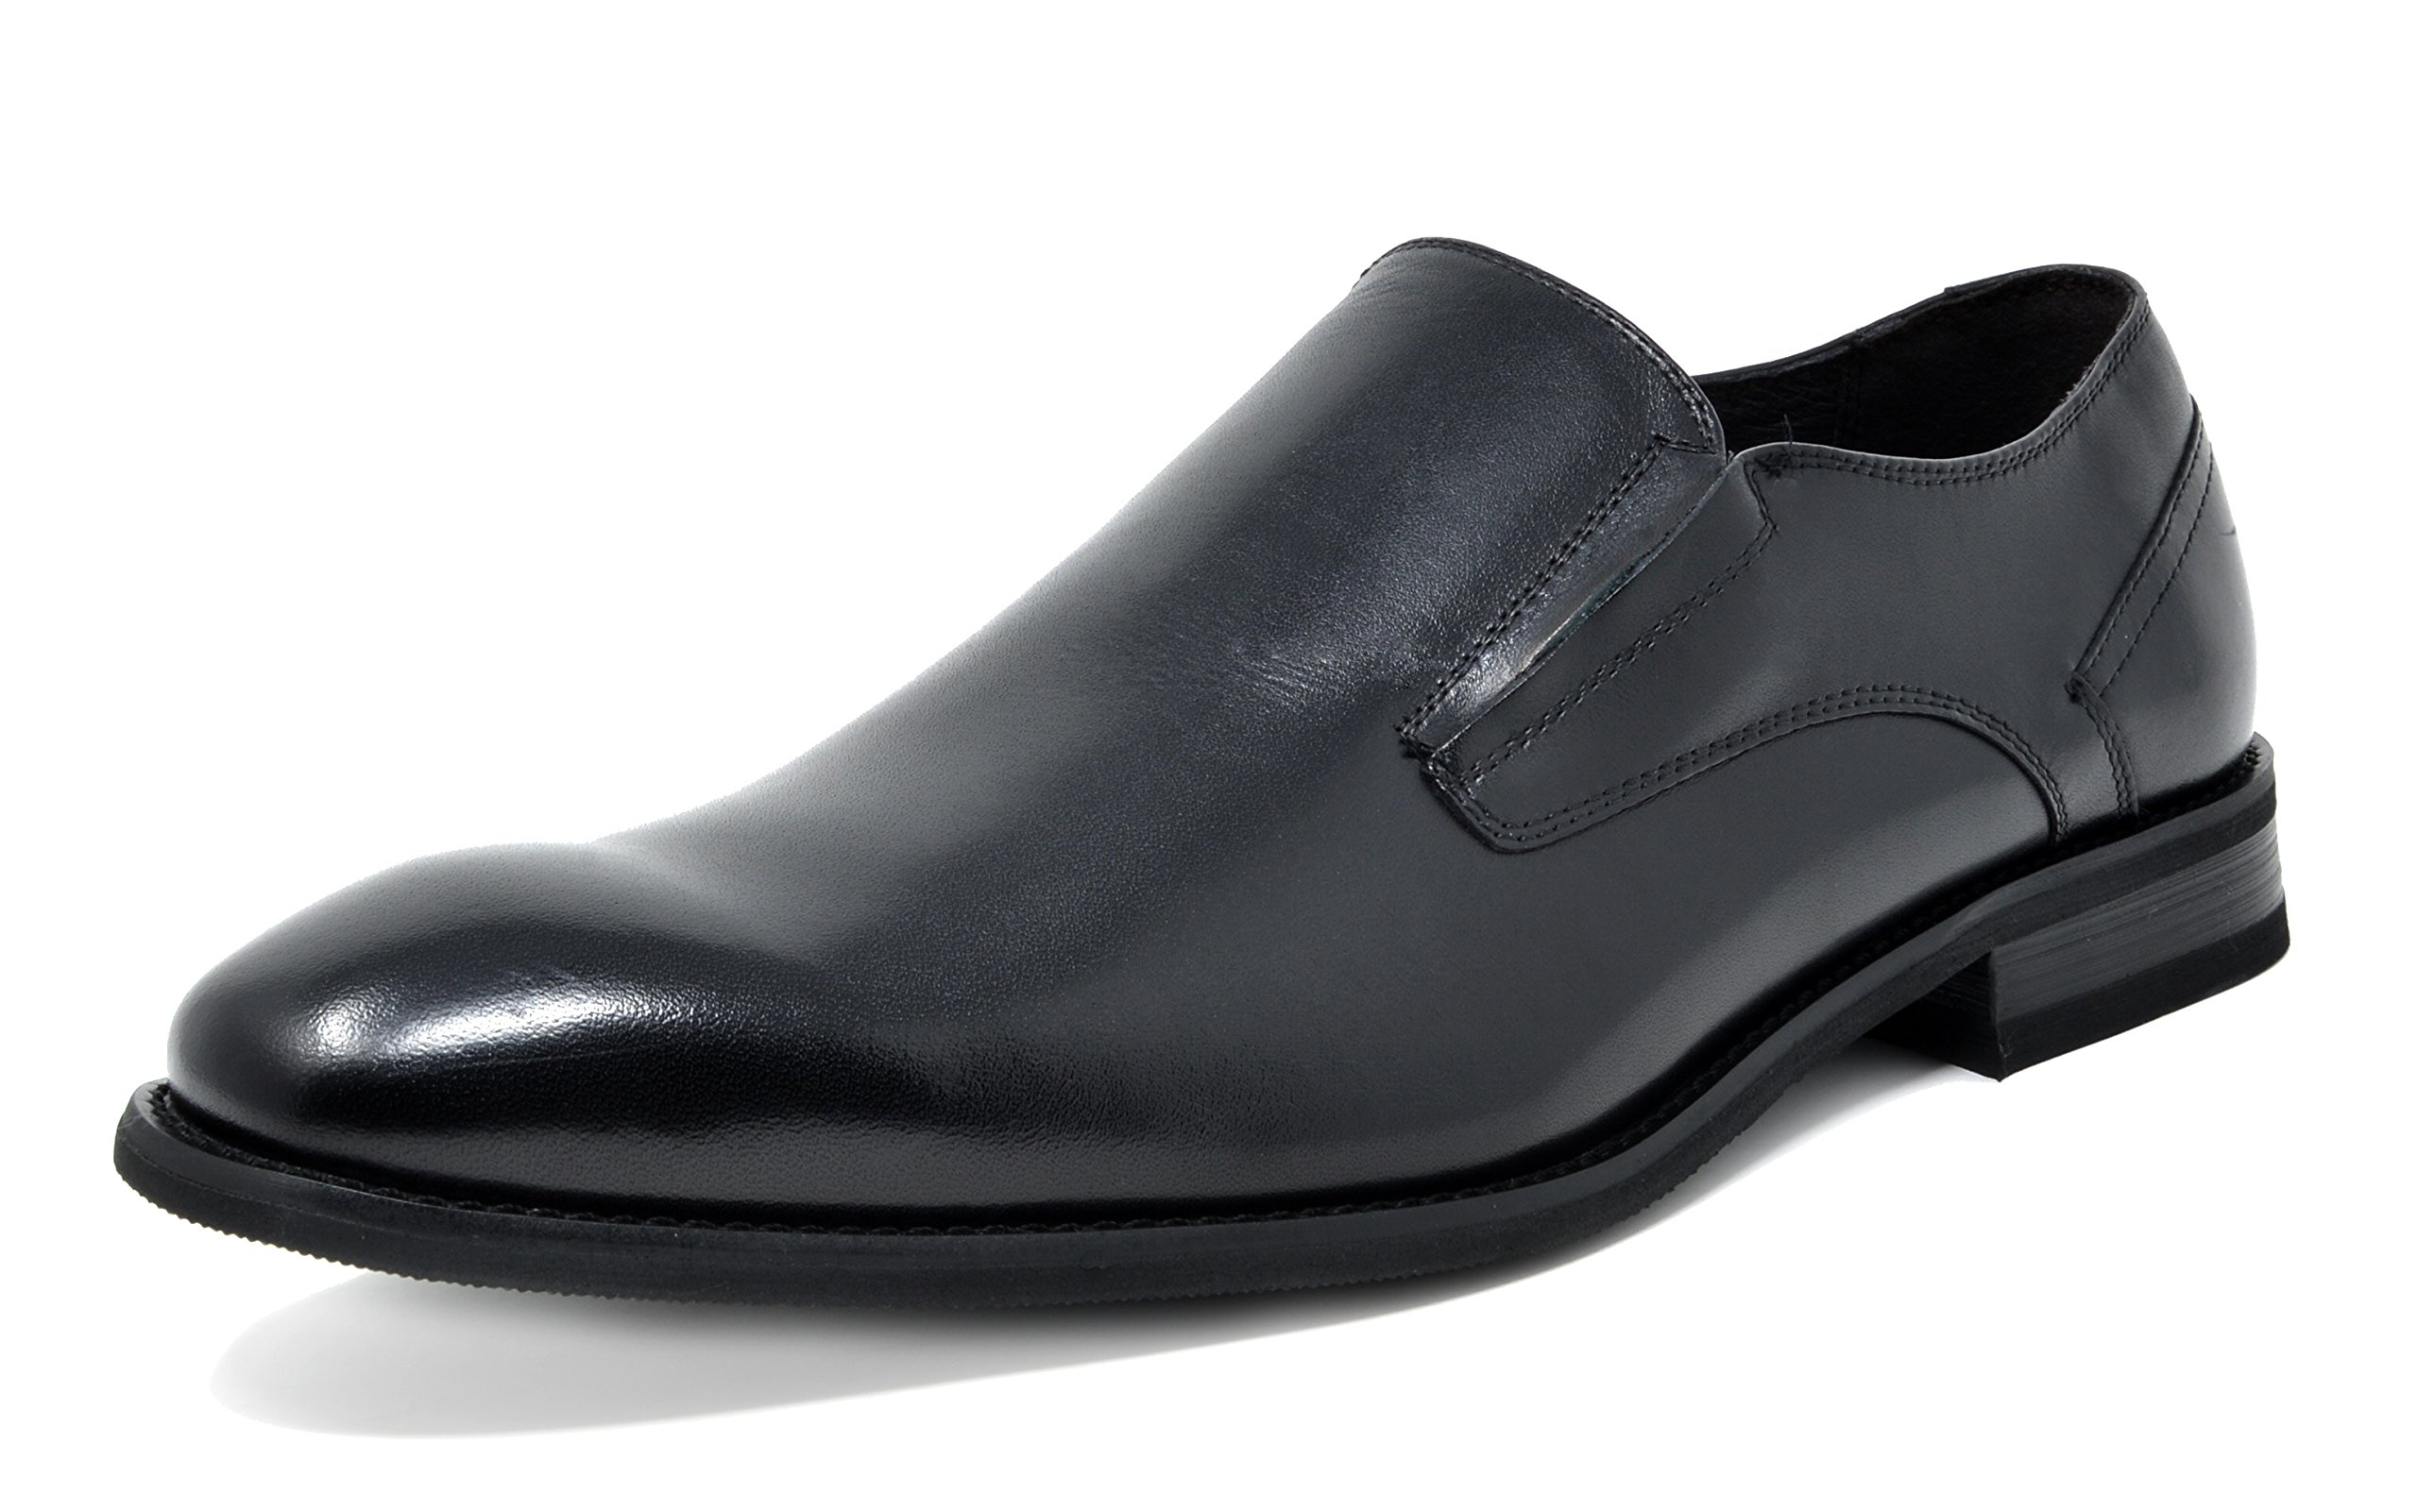 BRUNO MARC NEW YORK Bruno Marc Men's WASHINGTON-6 Black Leather Lined Dress Loafers Shoes Size 9.5 M US by BRUNO MARC NEW YORK